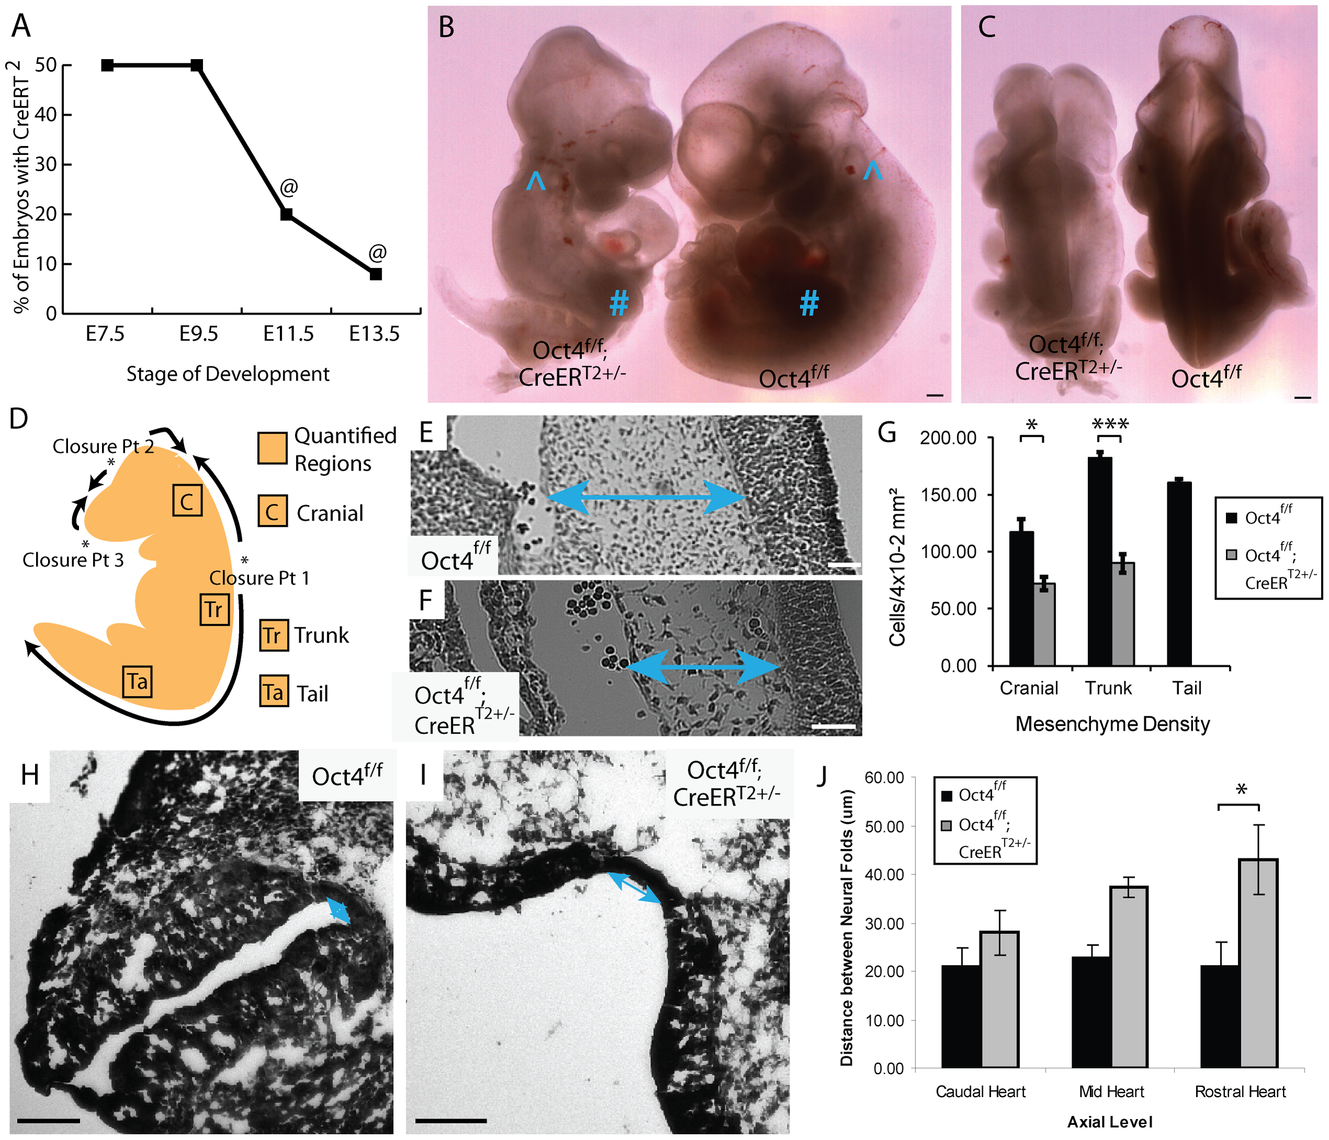 Depletion of Oct4 ∼E7.5 results in diminished viability, reduced mesenchyme density and broader spacing between the neural folds.